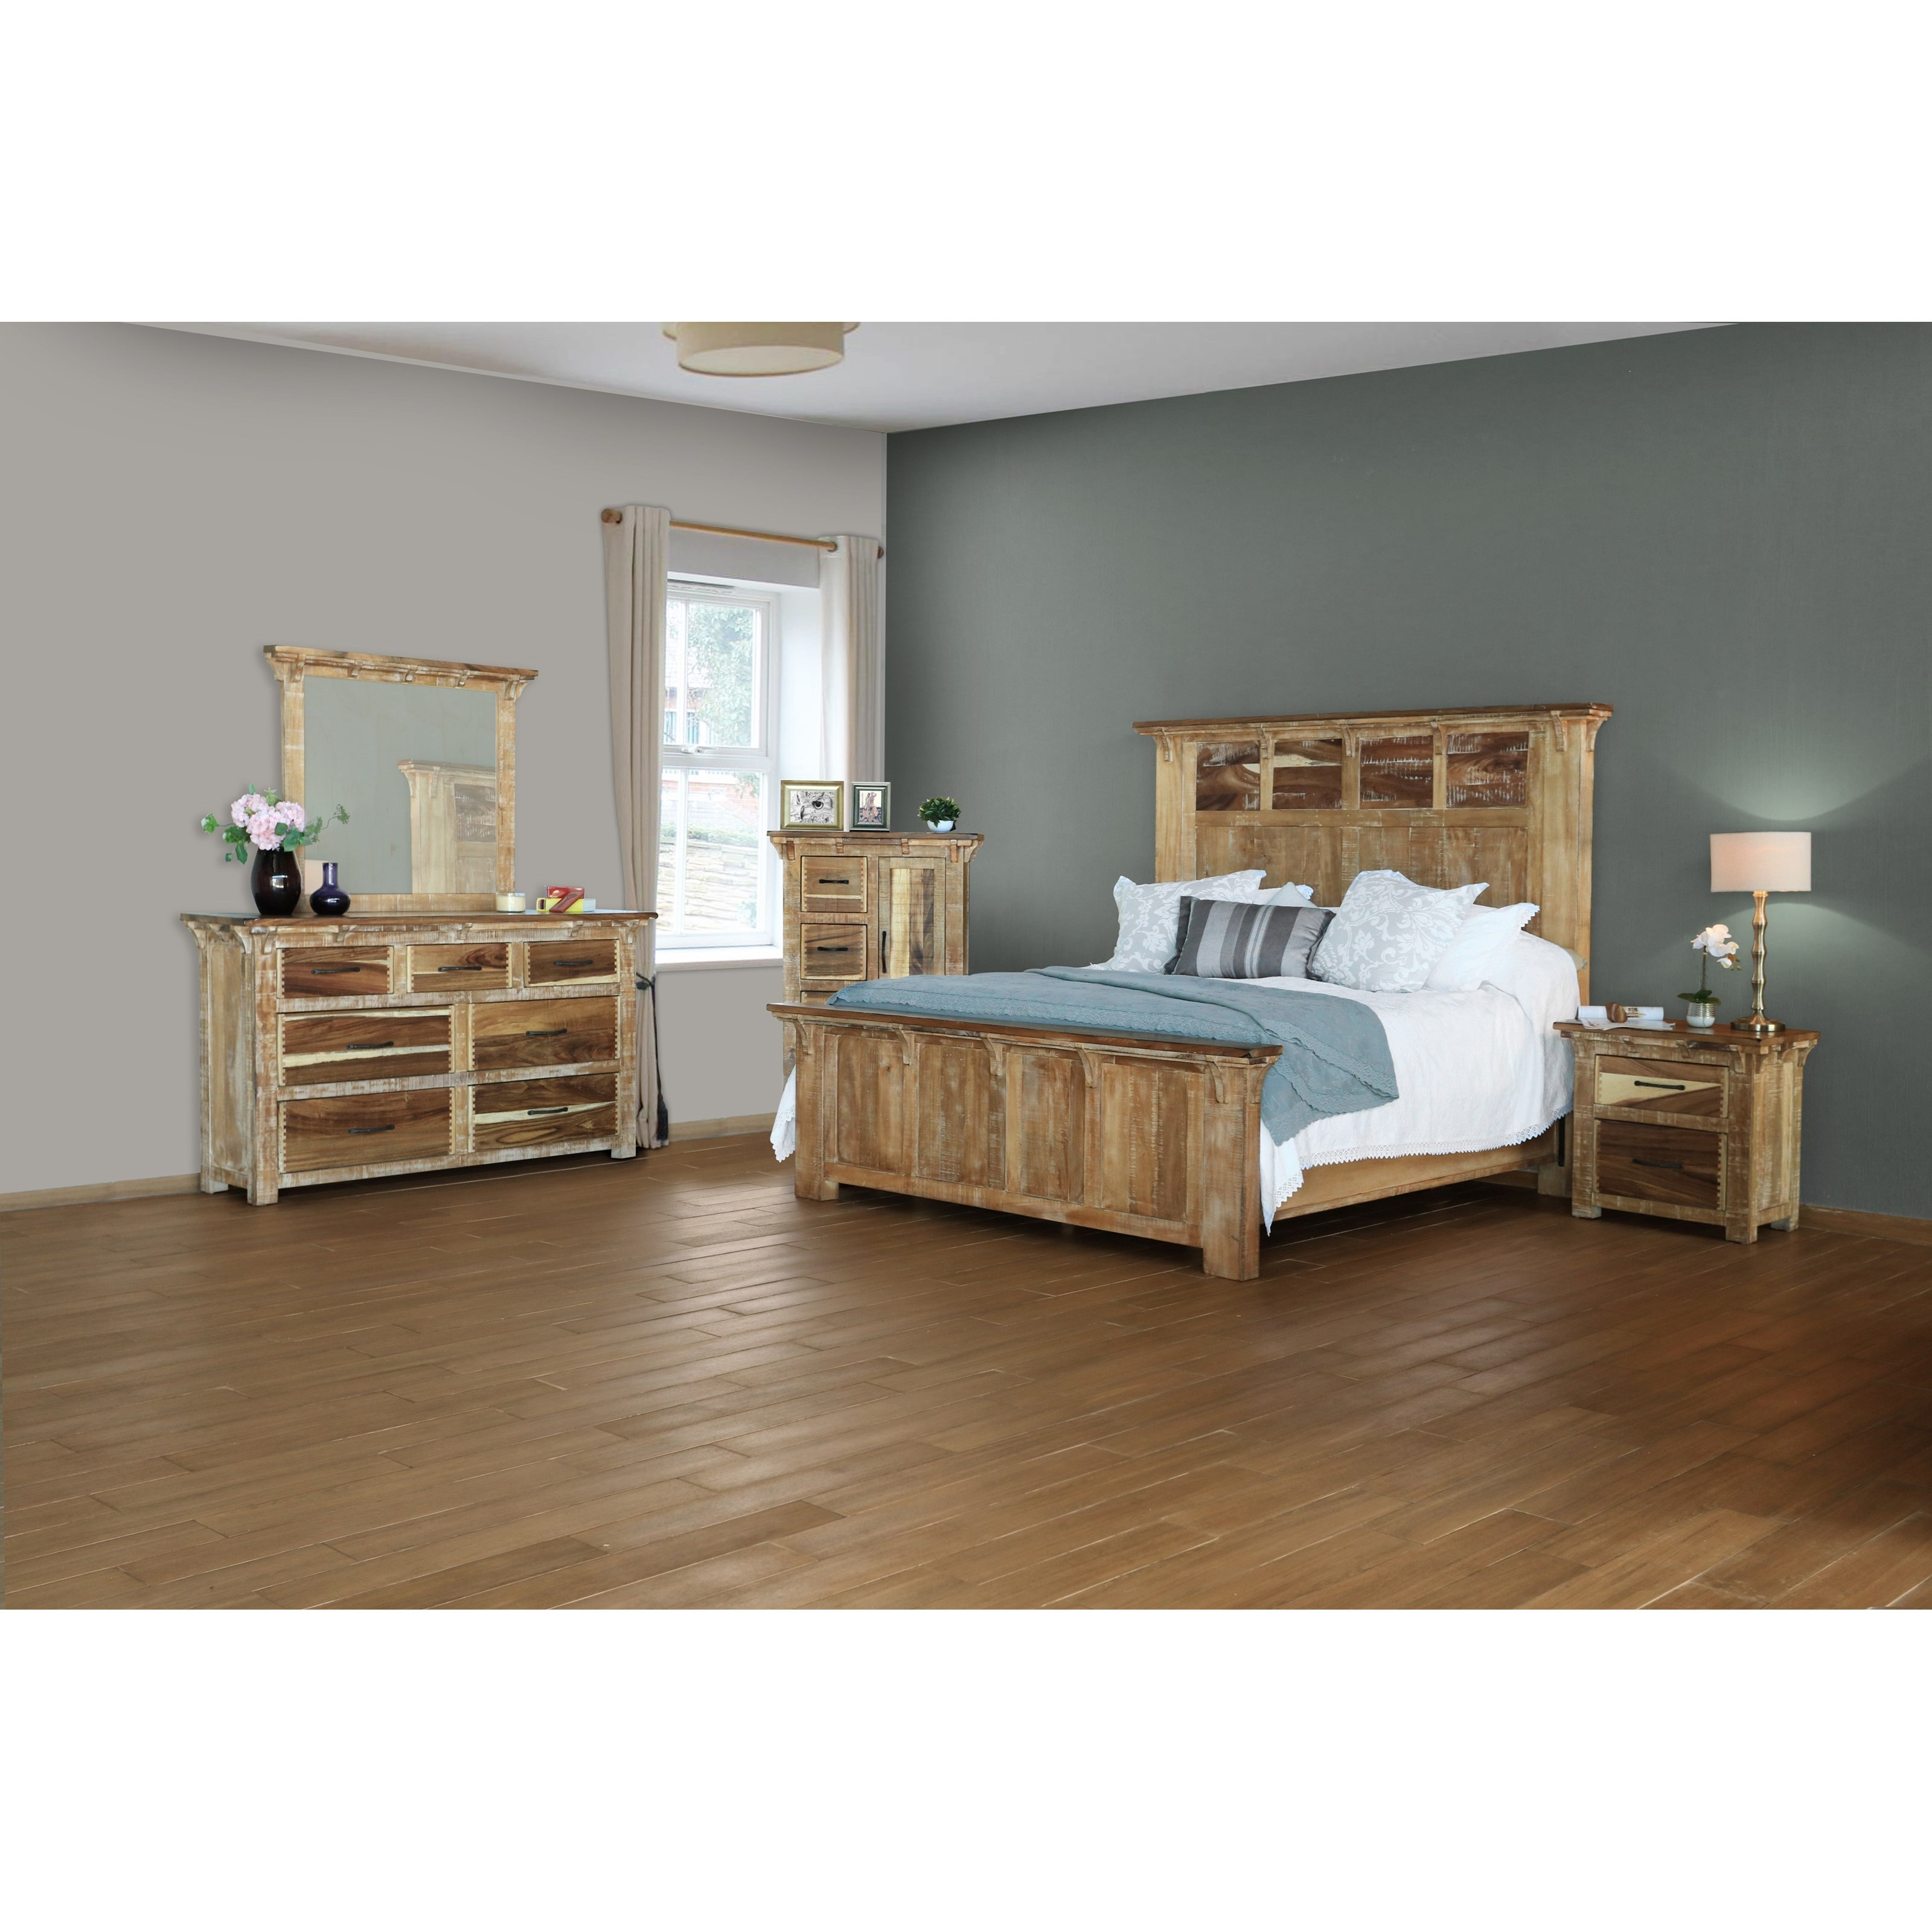 International Furniture Direct Casablanca Queen Bedroom Group - Item Number: 830 Q Bedroom Group 1